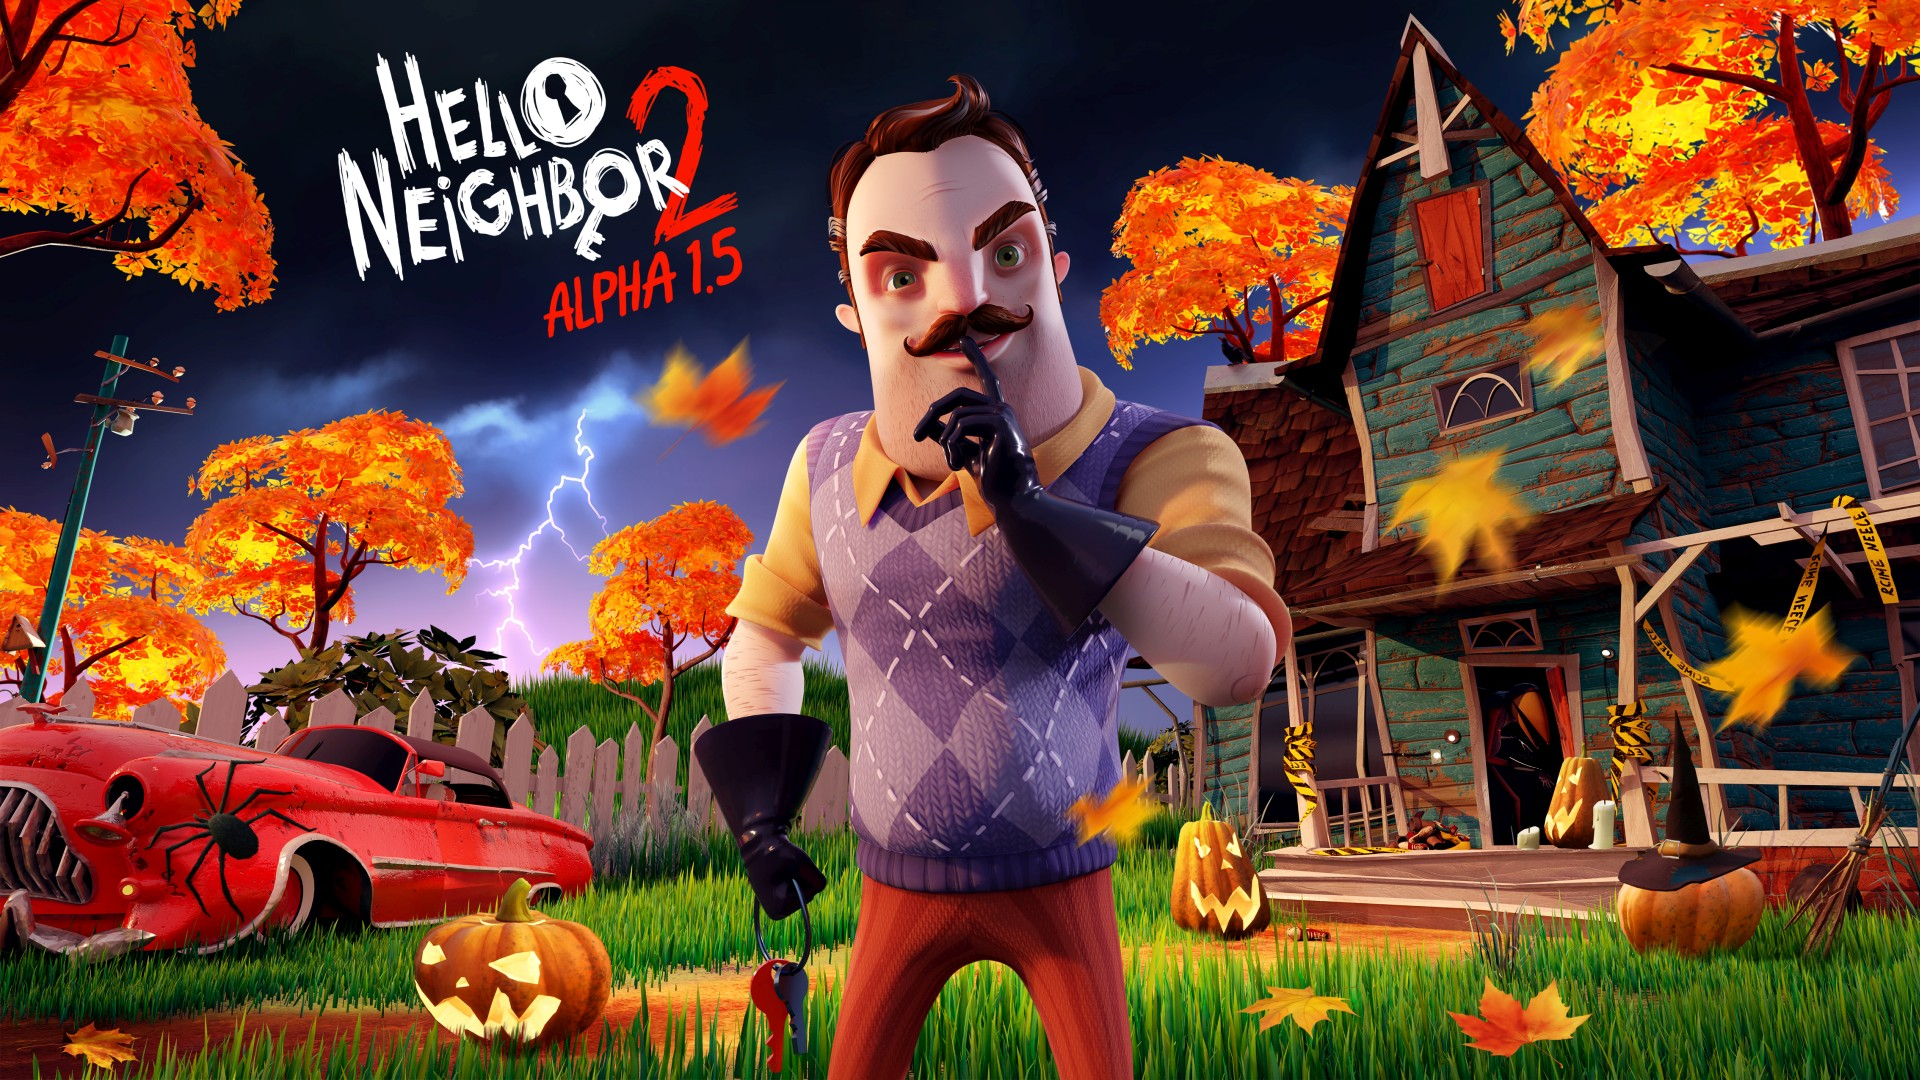 Video For Hello Neighbor 2 Alpha 1.5: Spooky Scary Raven Brooks